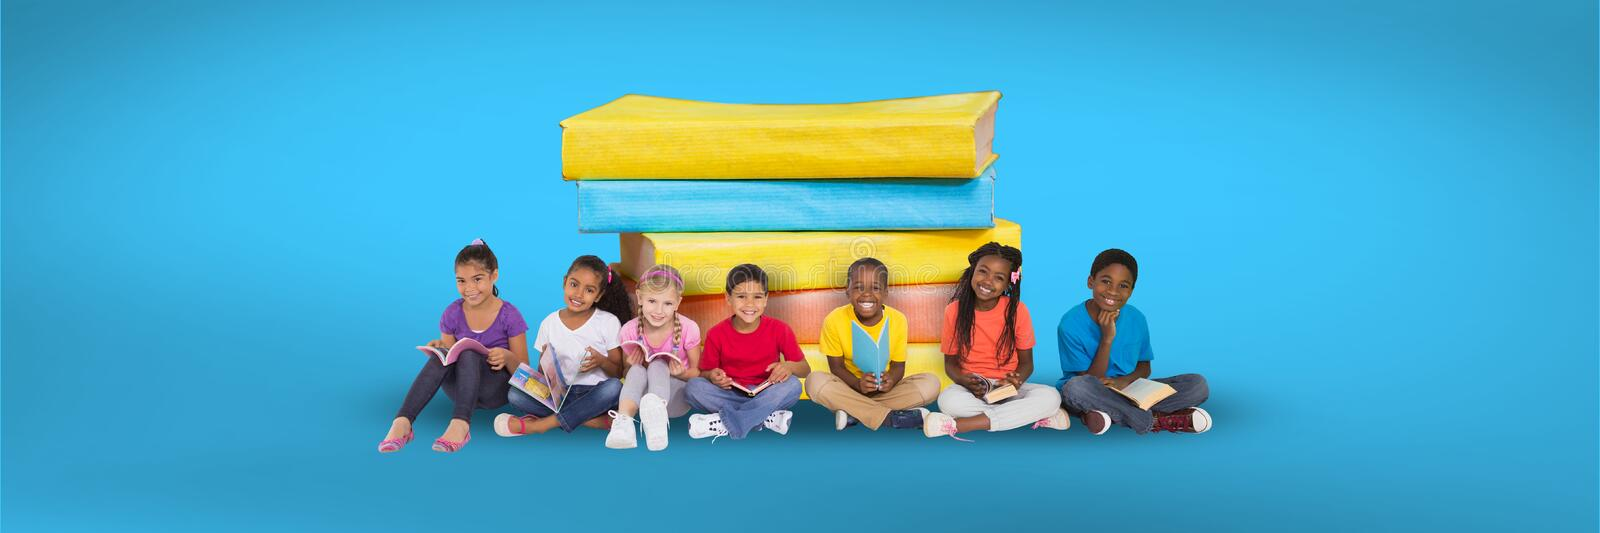 Children sitting on the floor and a pile of books with blue background royalty free stock photo